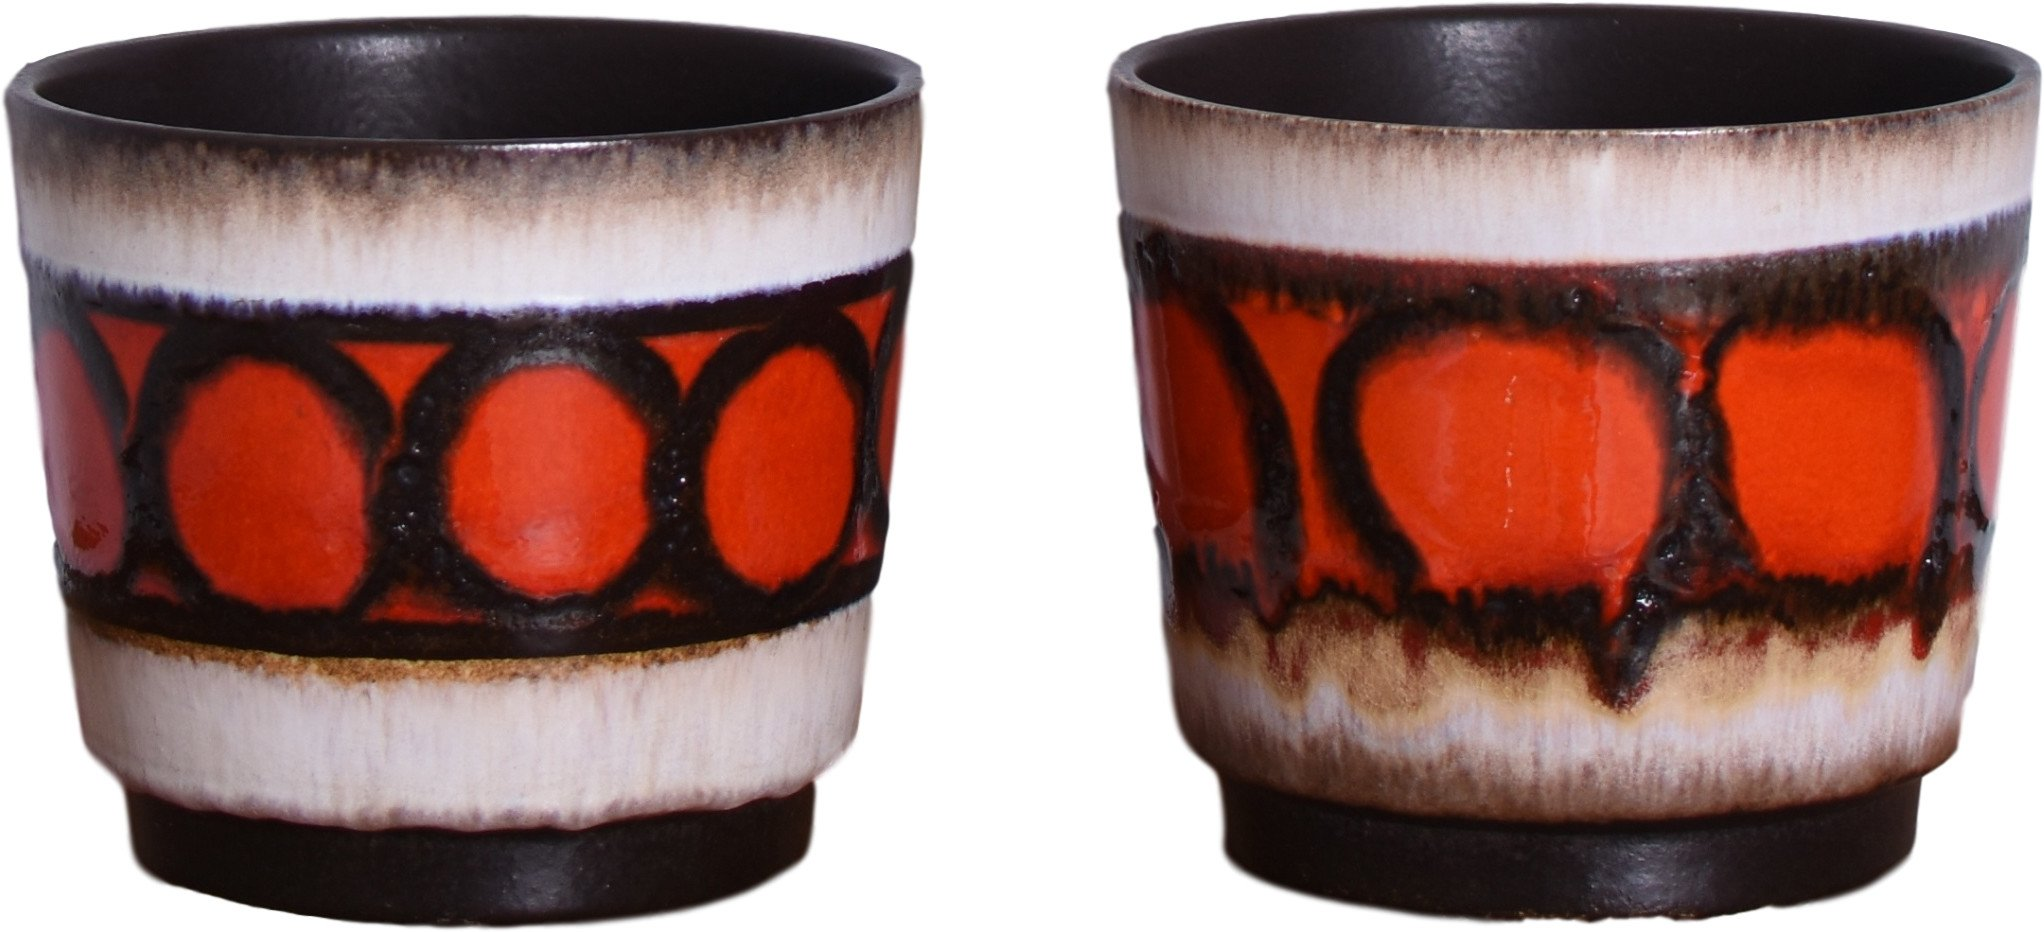 Pair of Flowerpots, West Germany, Germany, 1970s